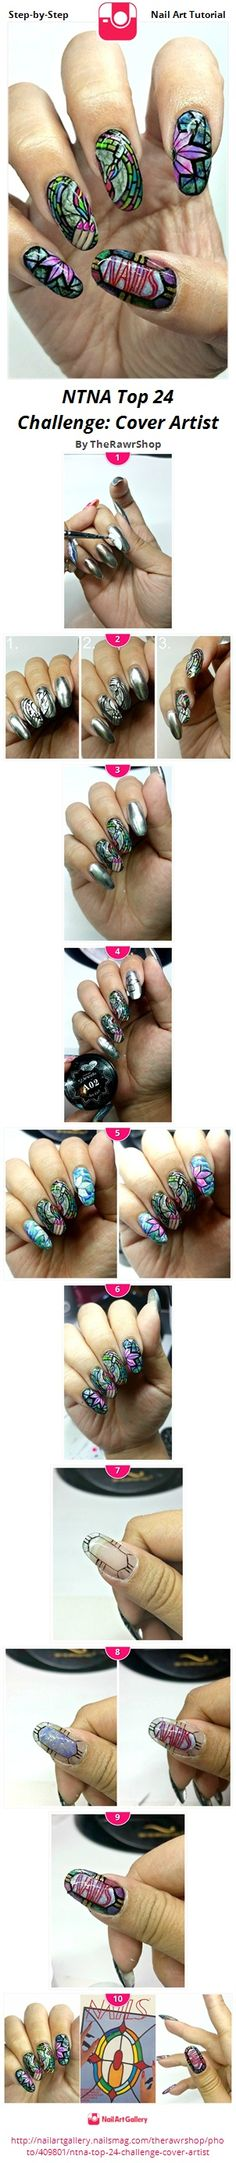 NTNA Top 24 Challenge: Cover Artist - Nail Art Gallery Step-by-Step Tutorial Photos